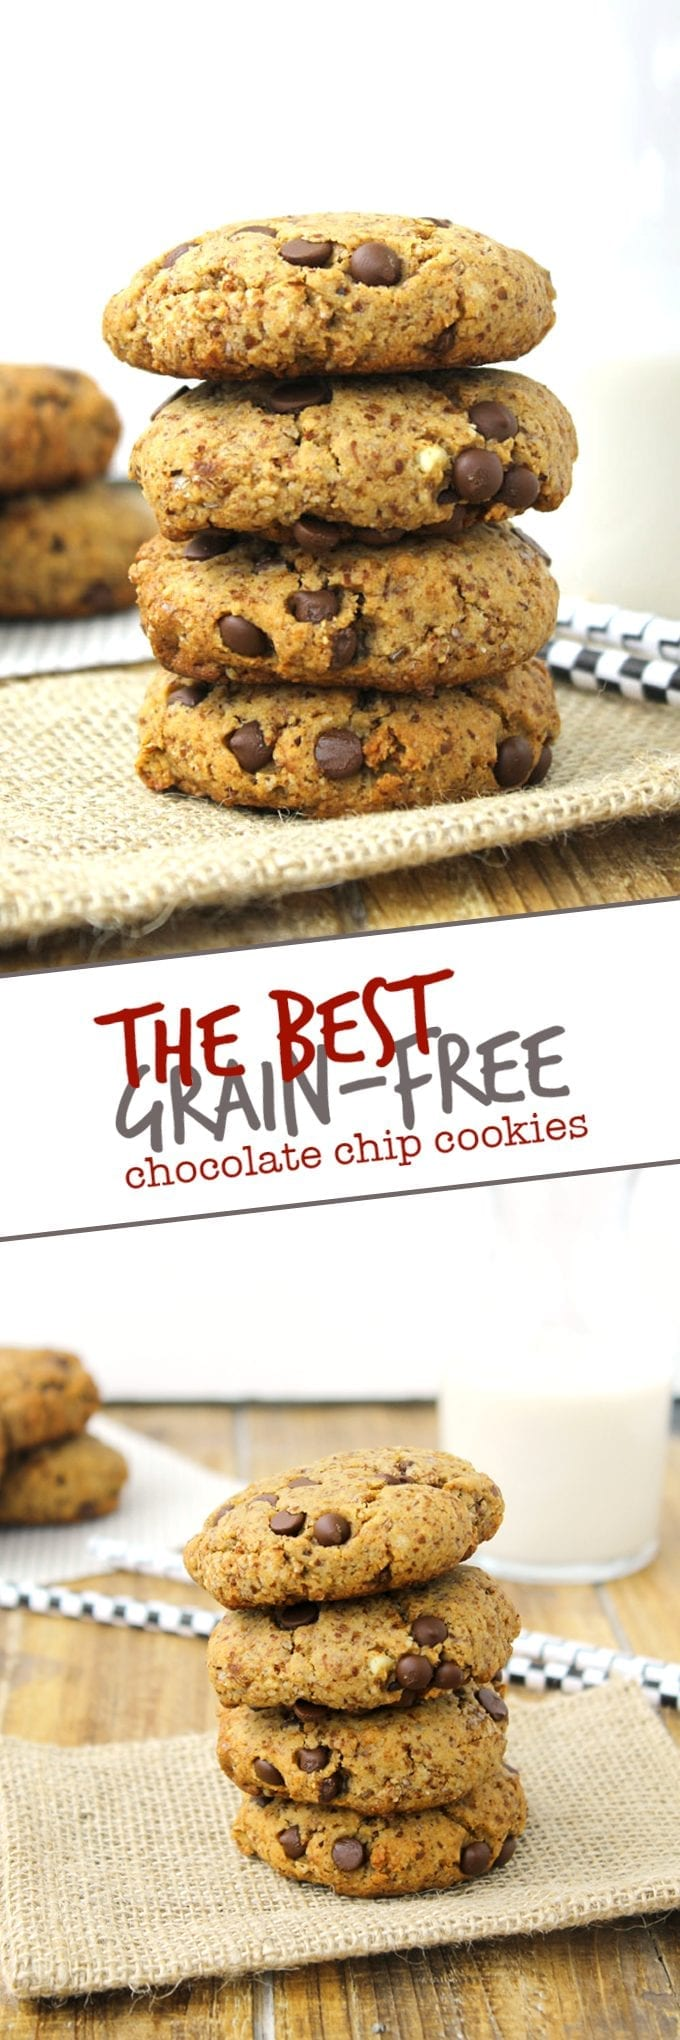 The Best Ever Grain-Free Chocolate Chip Cookies made with almond meal and coconut flour. You won't miss the grains in this paleo and healthy dessert recipe.